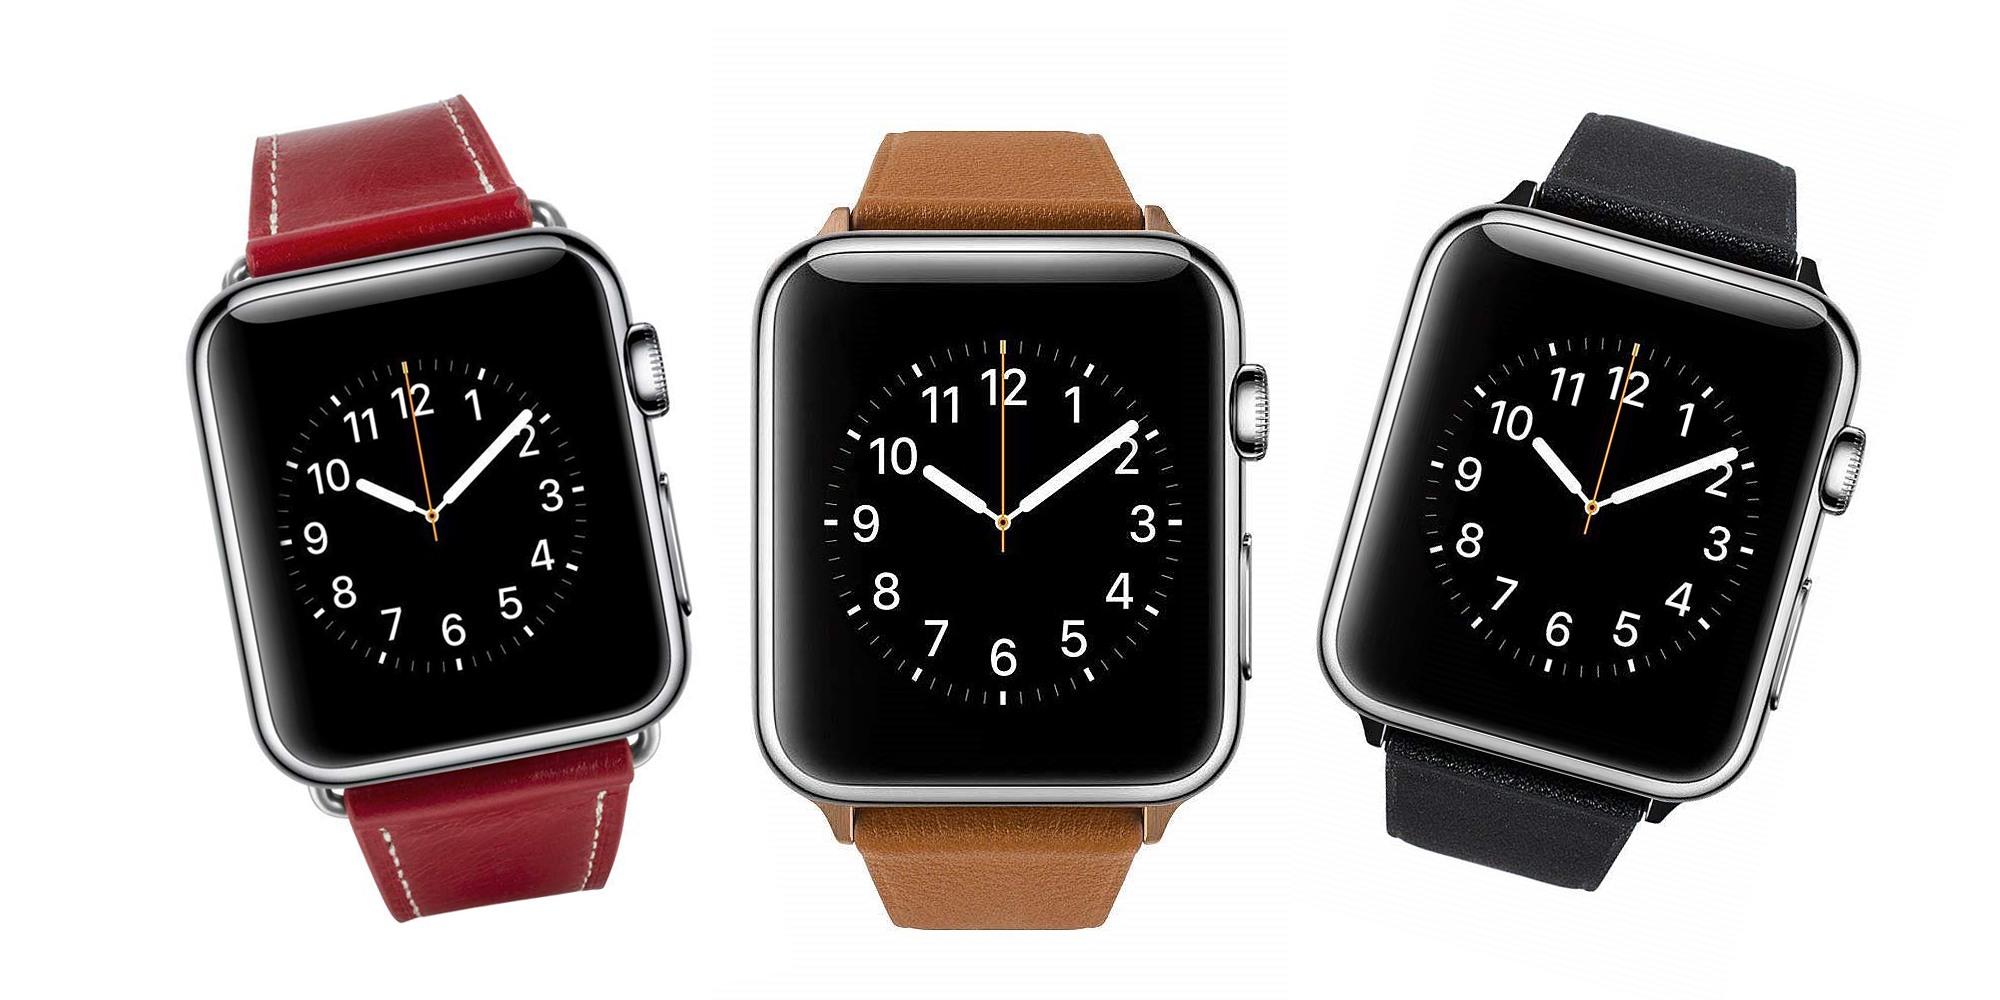 Add a leather Apple Watch band to your arsenal in various colors for $5.50 (Reg. $12+)